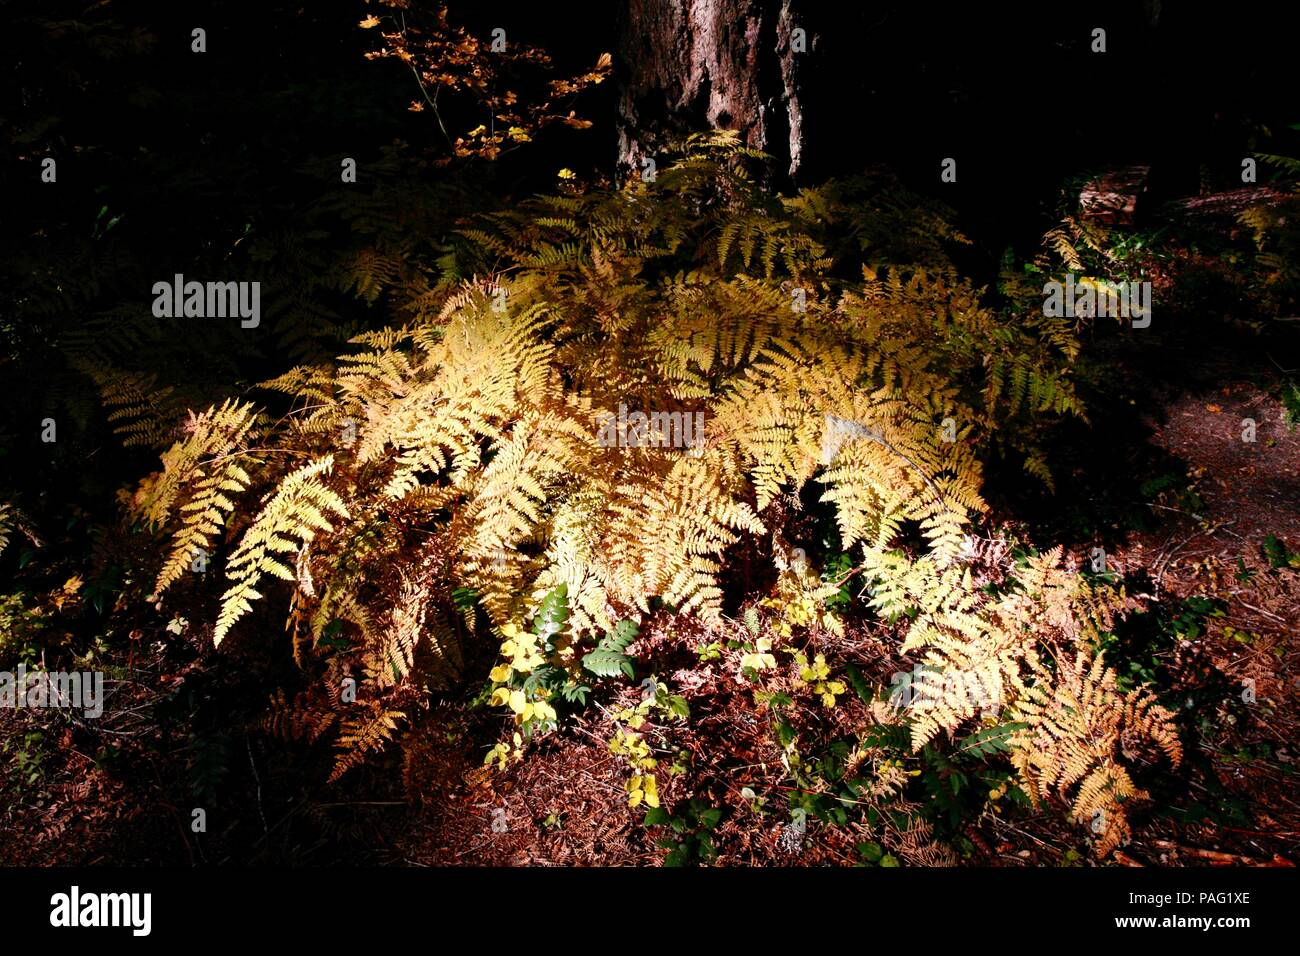 Sunlit Ferns in shadowy forest - Stock Image